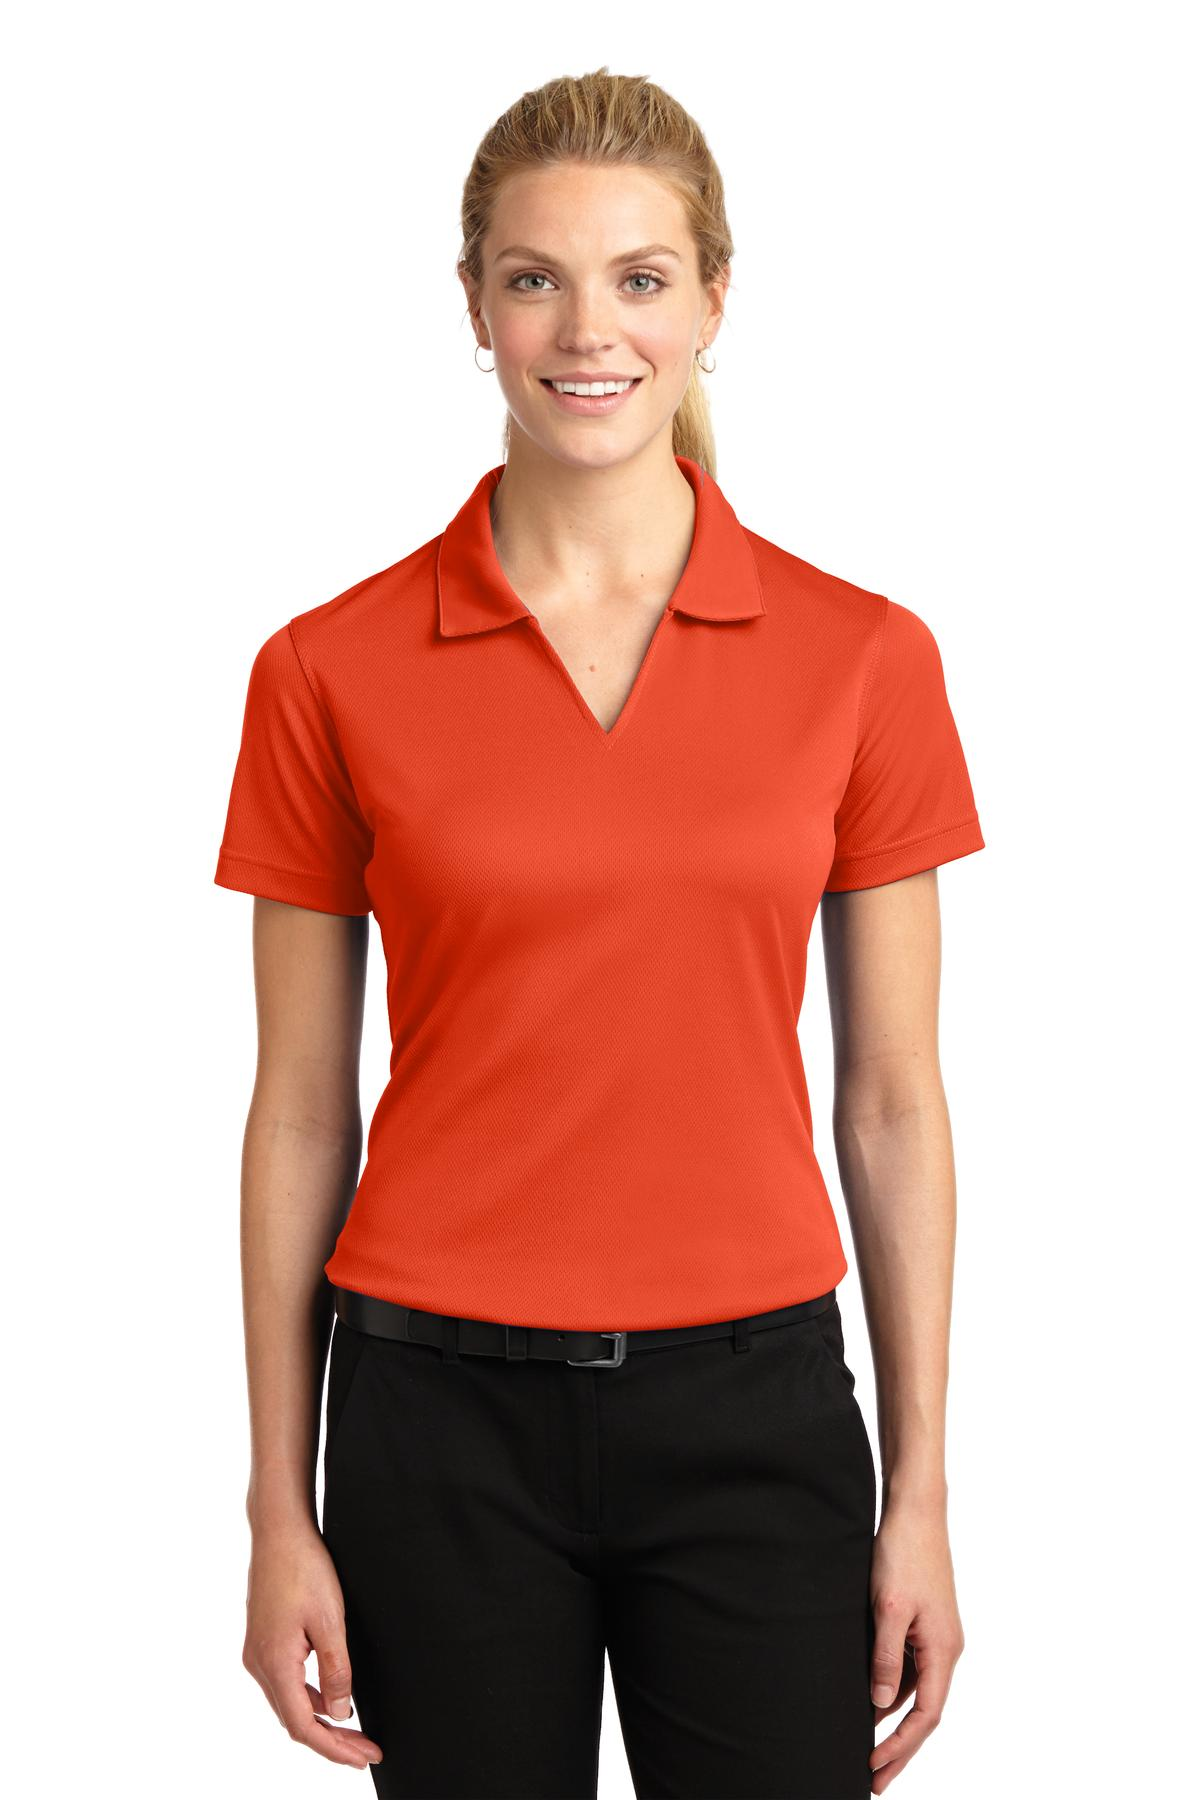 Sport-Tek ®  Ladies Dri-Mesh ®  V-Neck Polo.  L469 - Bright Orange